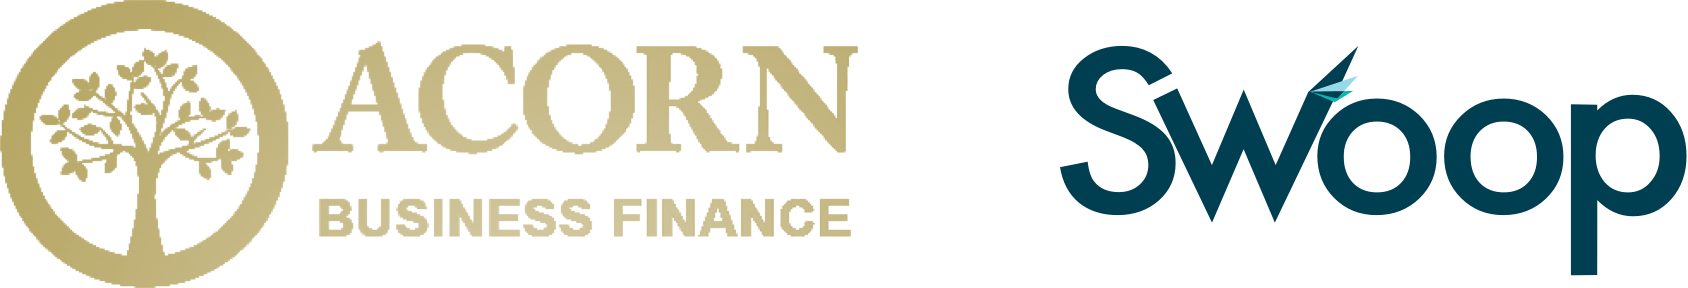 Acorn Business Finance